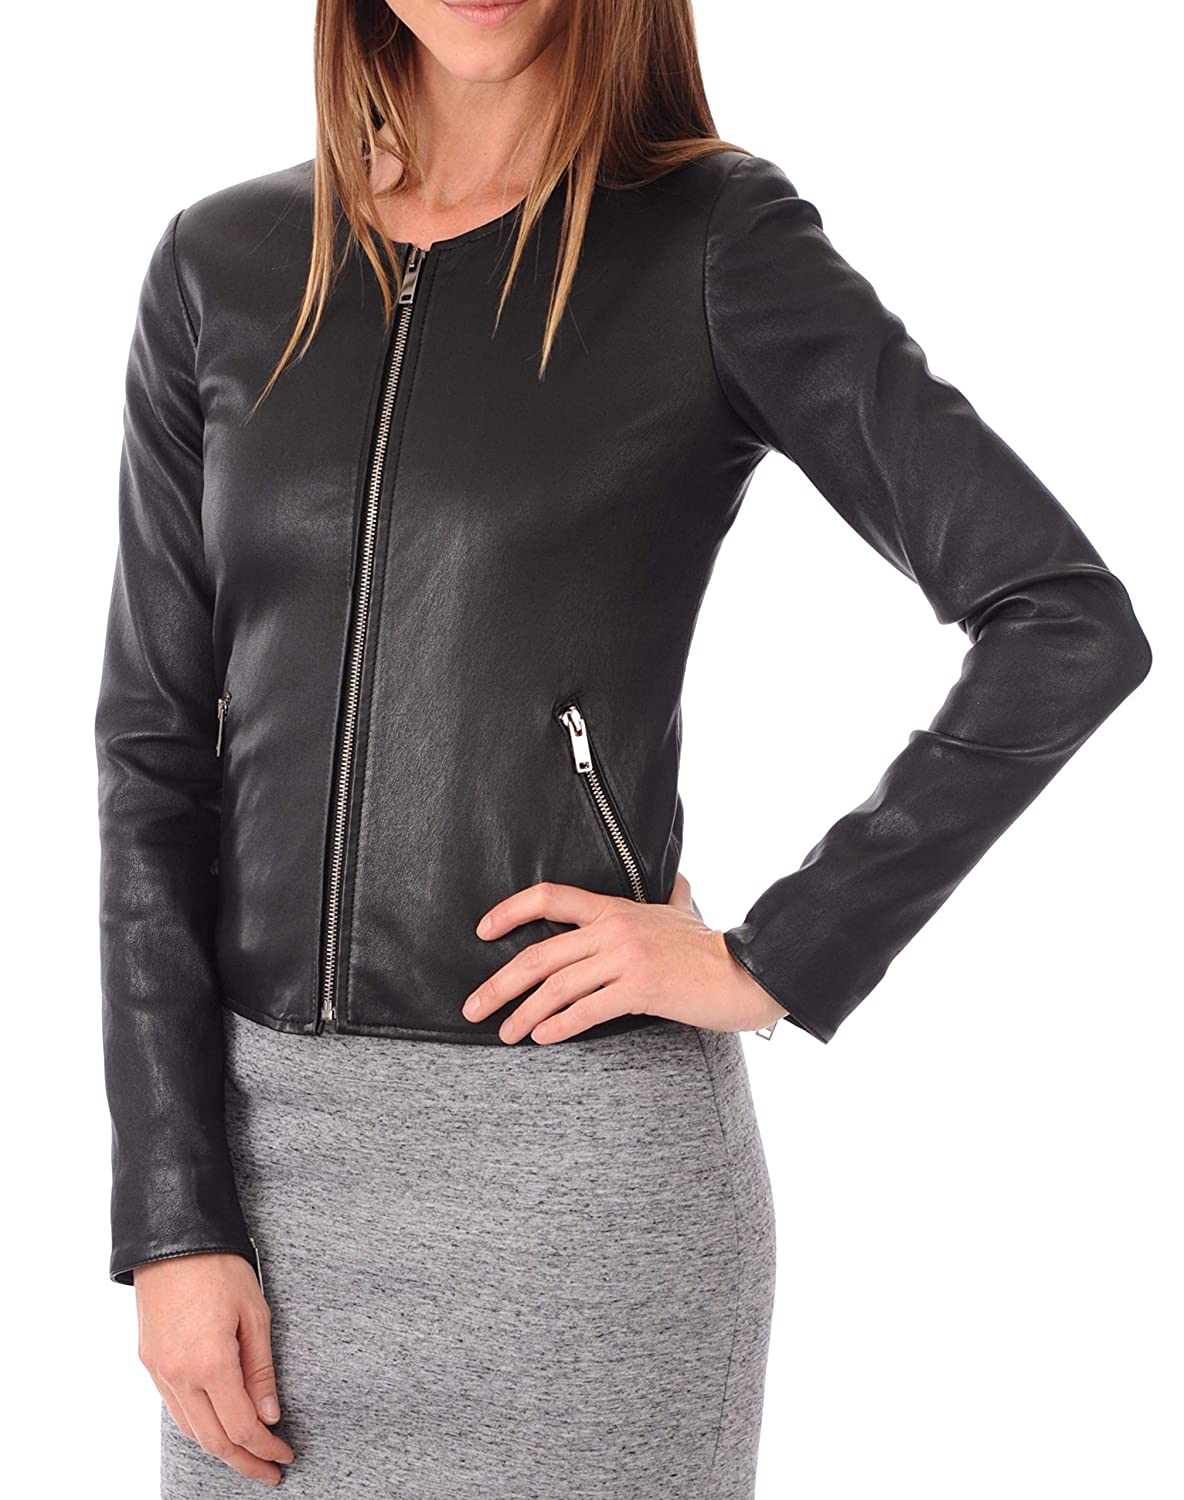 Black33 DOLLY LAMB 100% Leather Jacket for Women  Collarless Deep Neck & Slim Fit  Moto, Bomber, Biker Winter Casual Wear